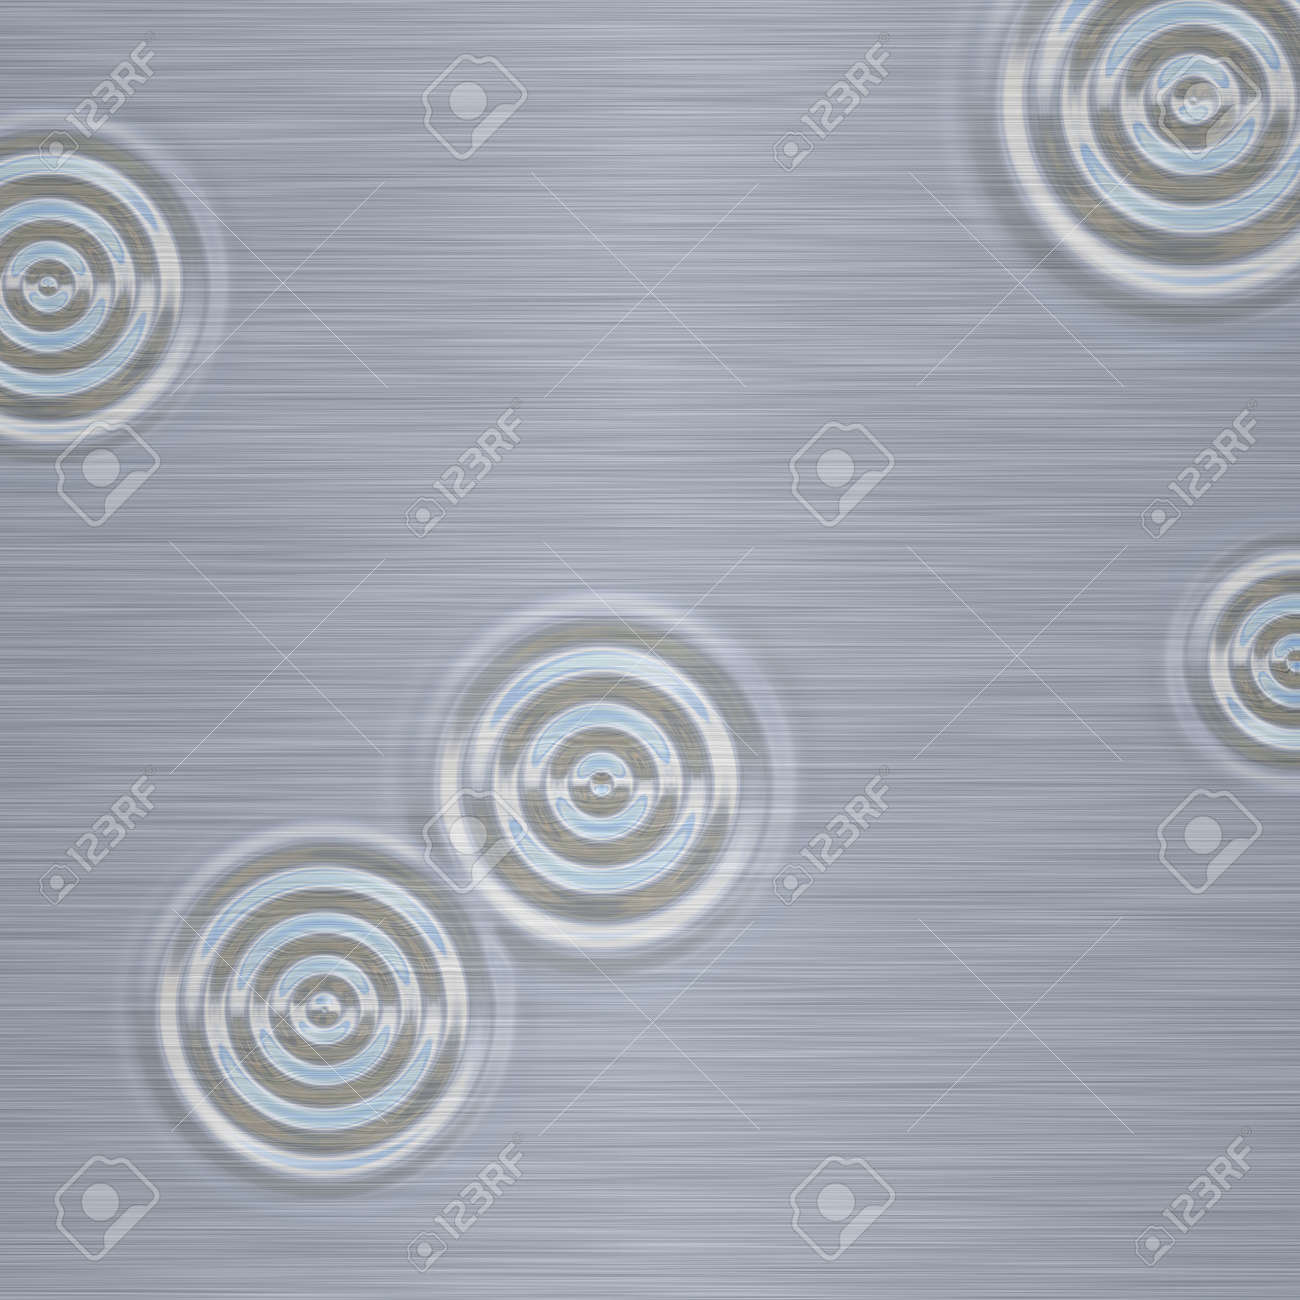 water drop type effect in a brushed metal / steel base Stock Photo - 1124821